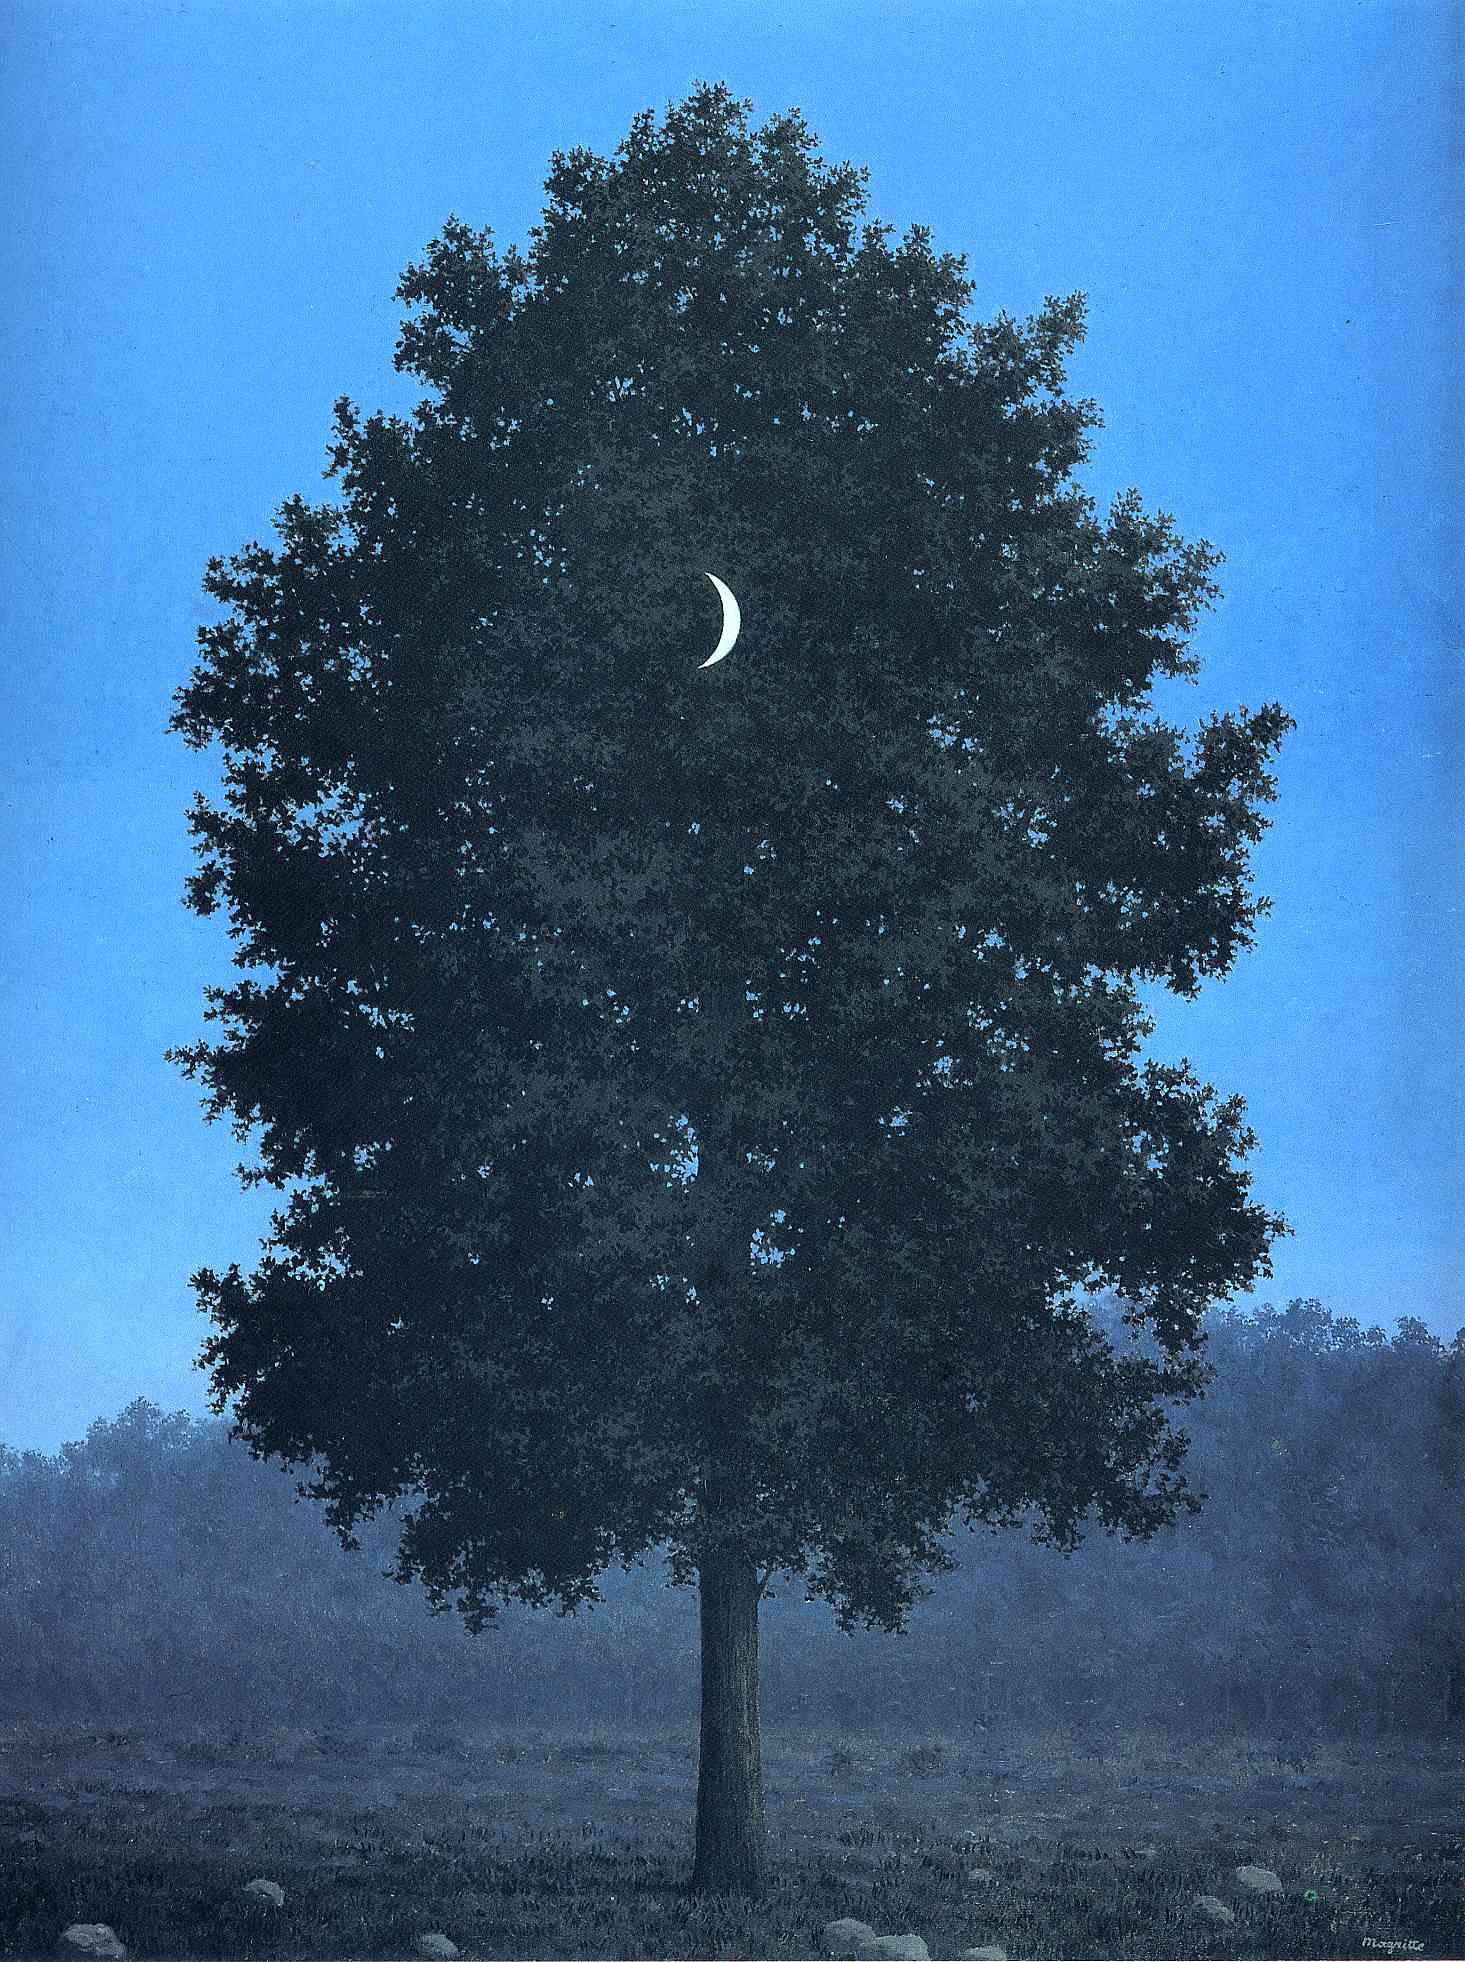 https://uploads5.wikiart.org/images/rene-magritte/sixteenth-of-september-1956(1).jpg